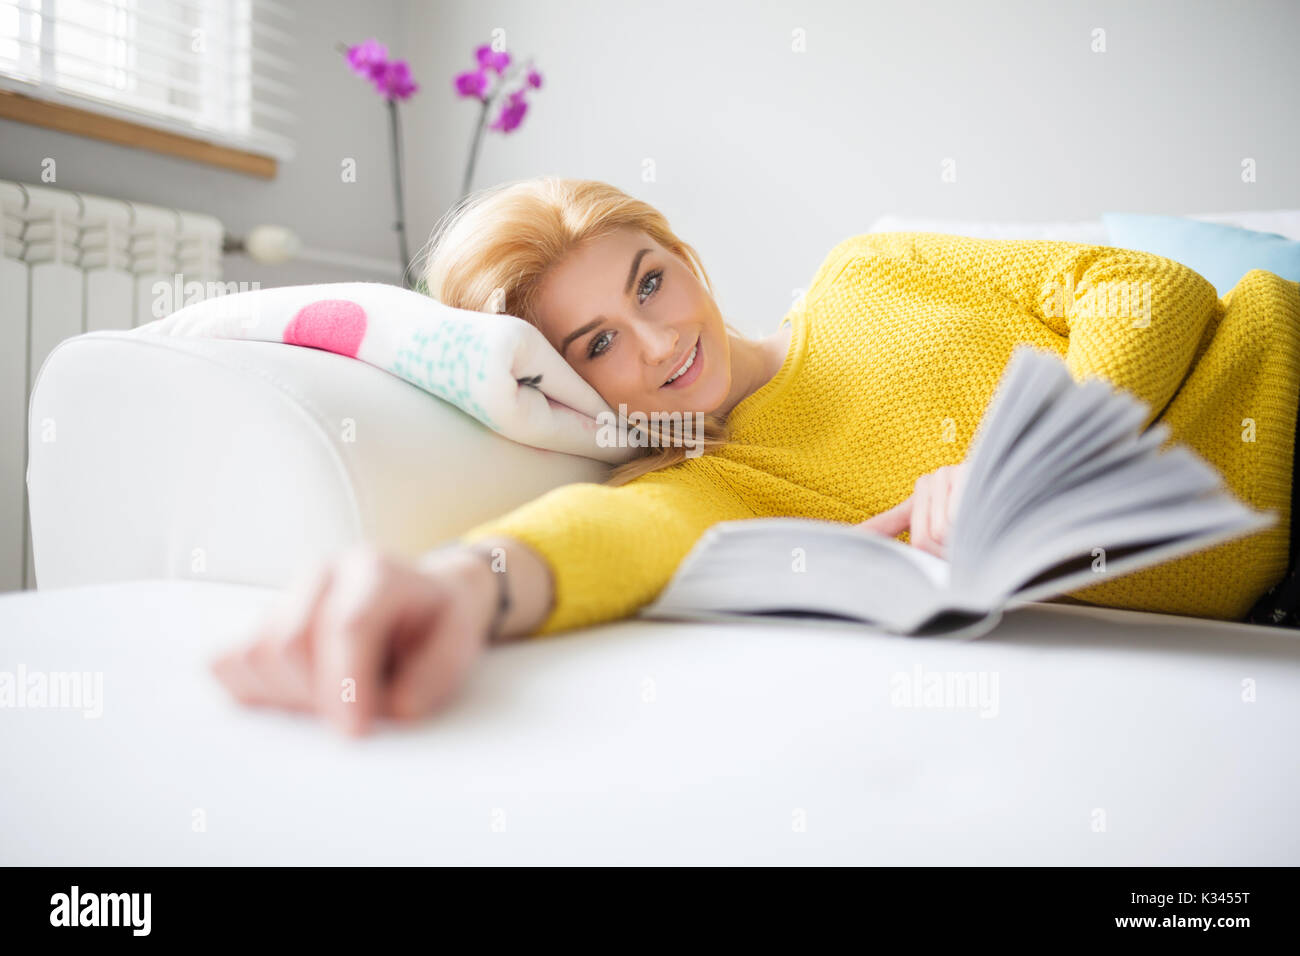 A photo of young, beautiful woman lying on the couch and reading book. She's smiling happily. - Stock Image